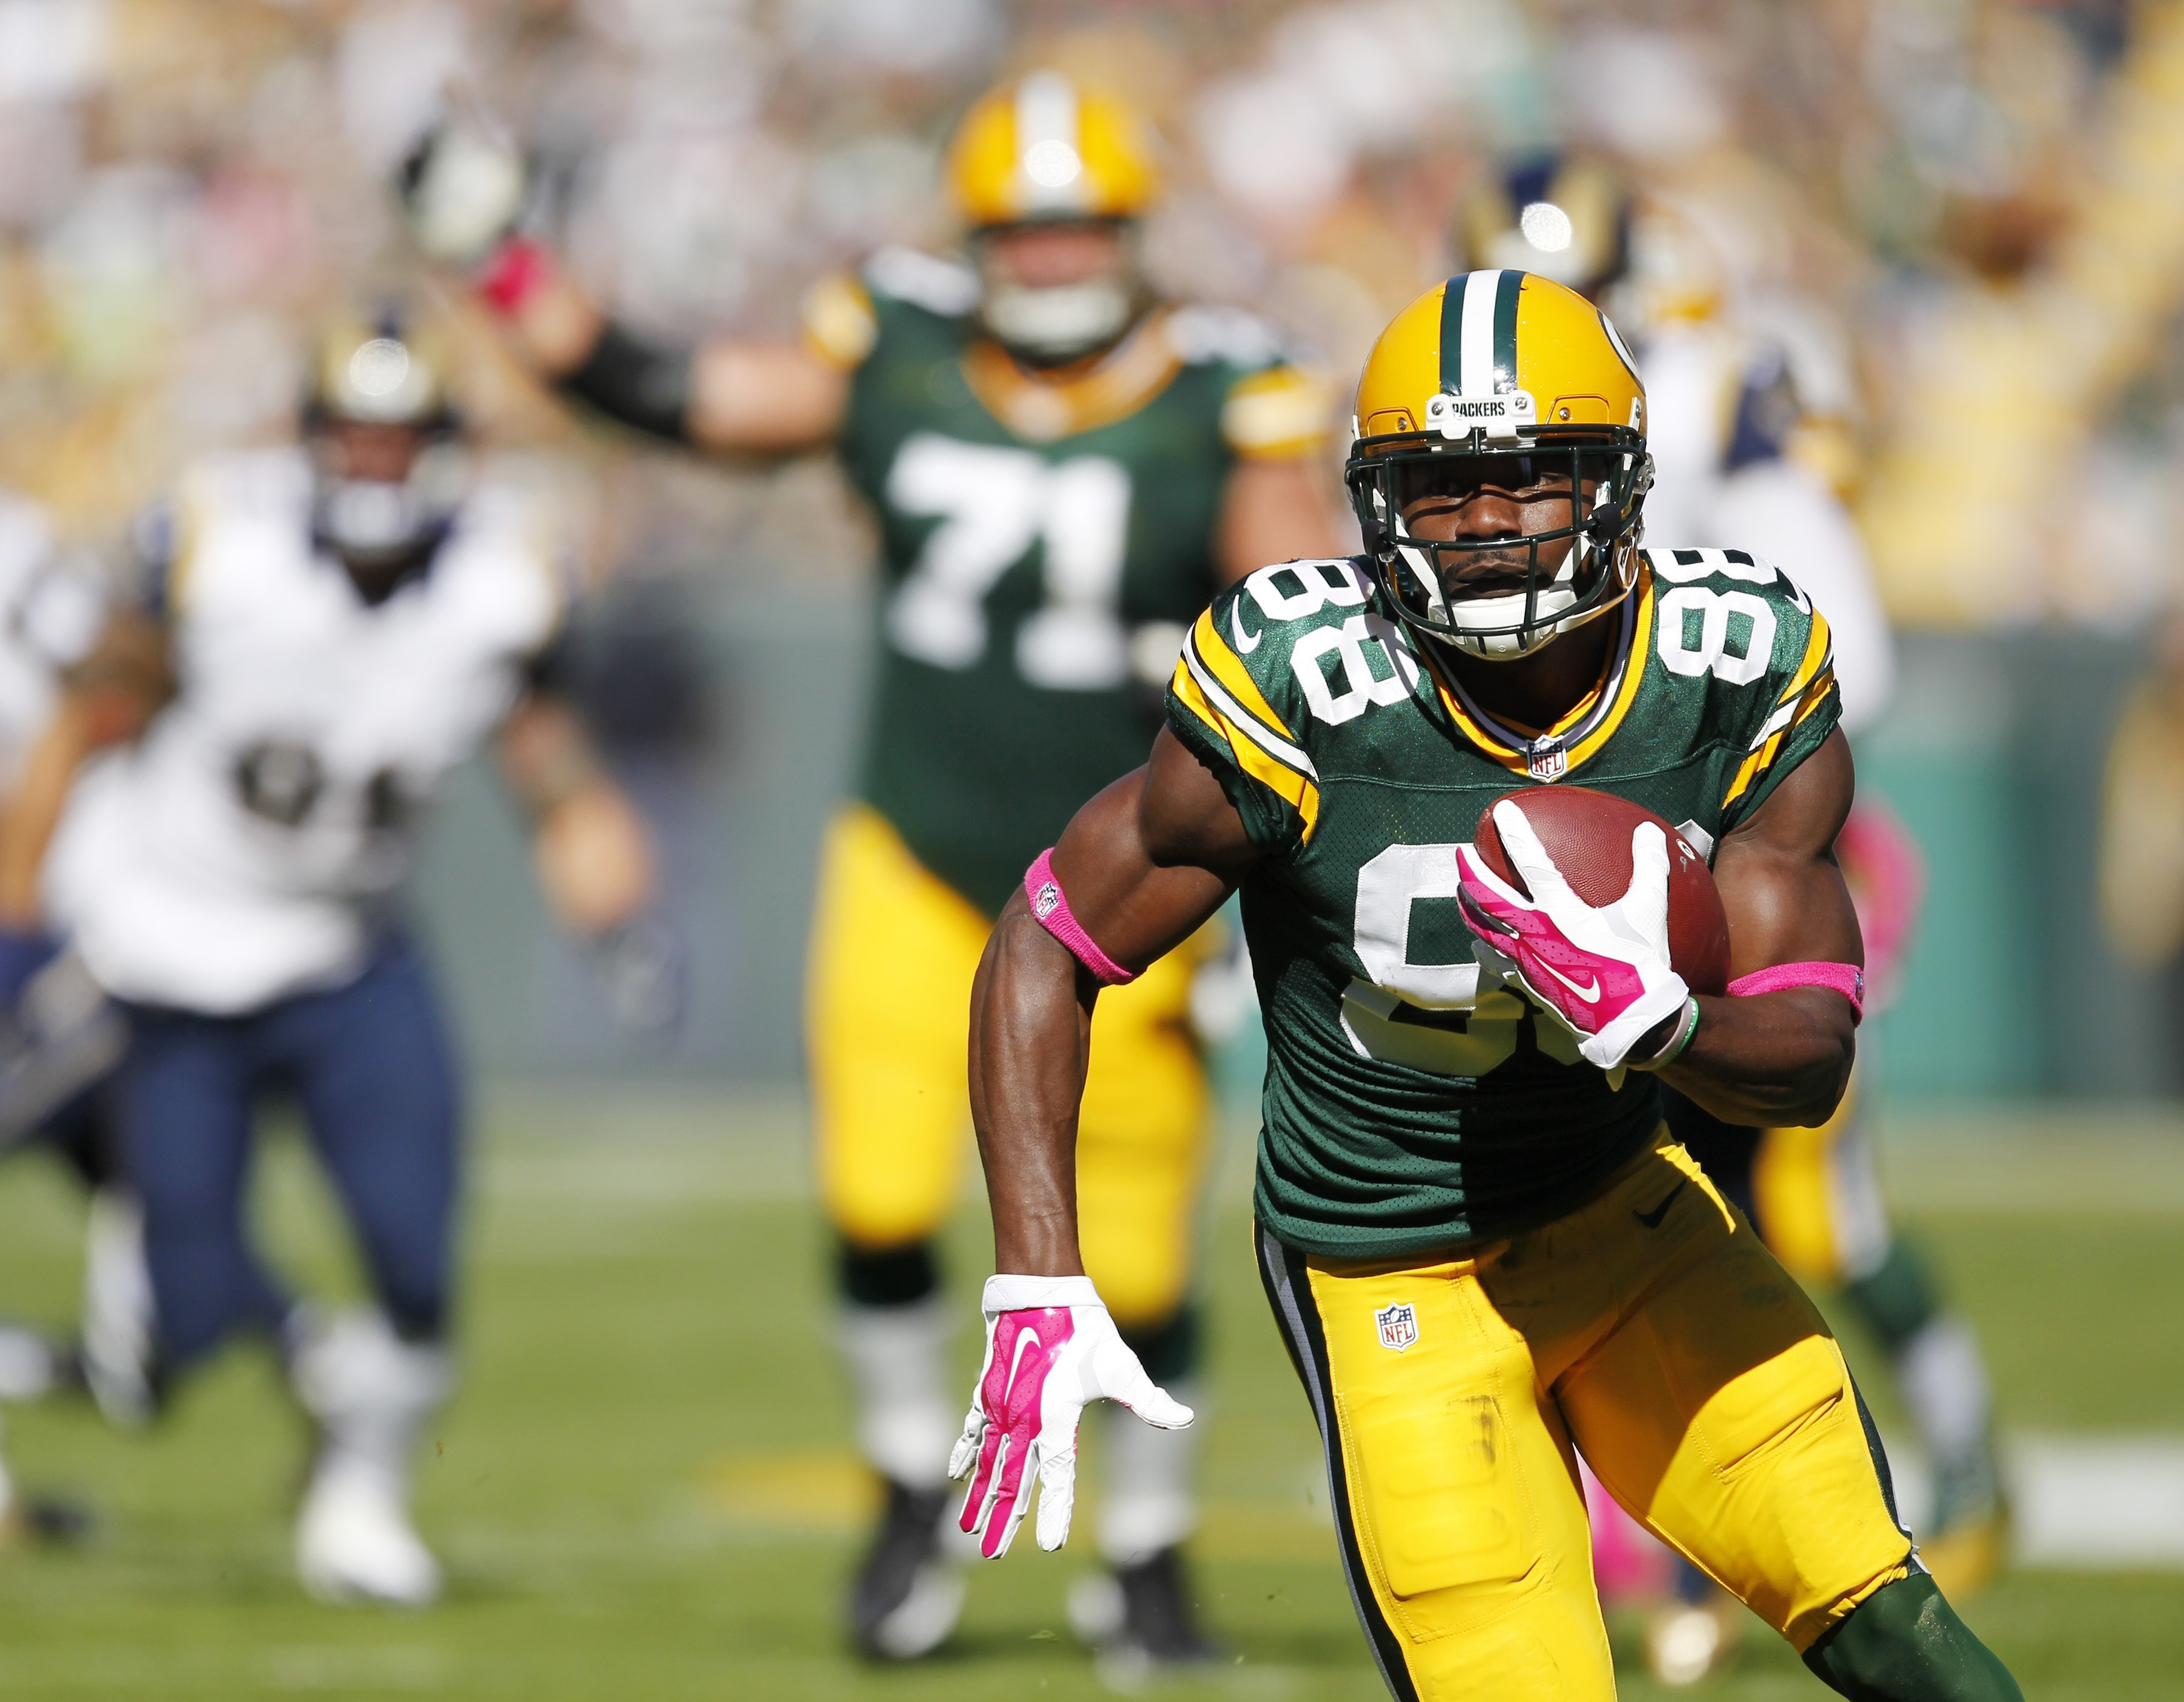 FILE - In this Oct. 11, 2015, file photo, Green Bay Packers' Ty Montgomery catches a touchdown pass during the first half an NFL football game against the St. Louis Rams in Green Bay, Wis. As a rookie in 2015, Montgomery had some success in a change-of-pa